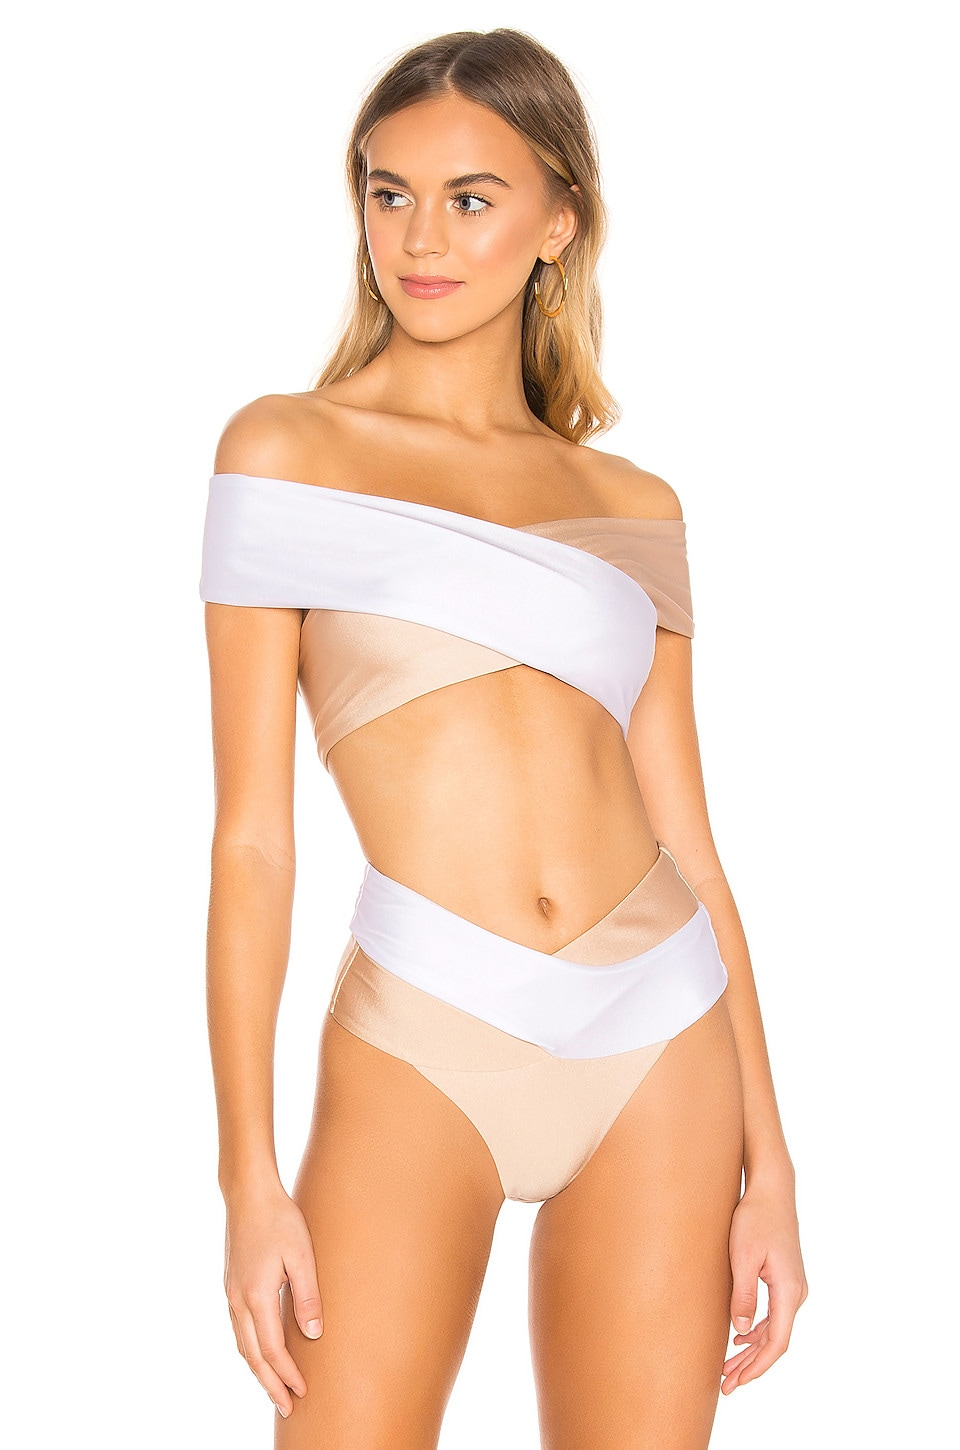 lovewave Gizelle Top in Nude & White